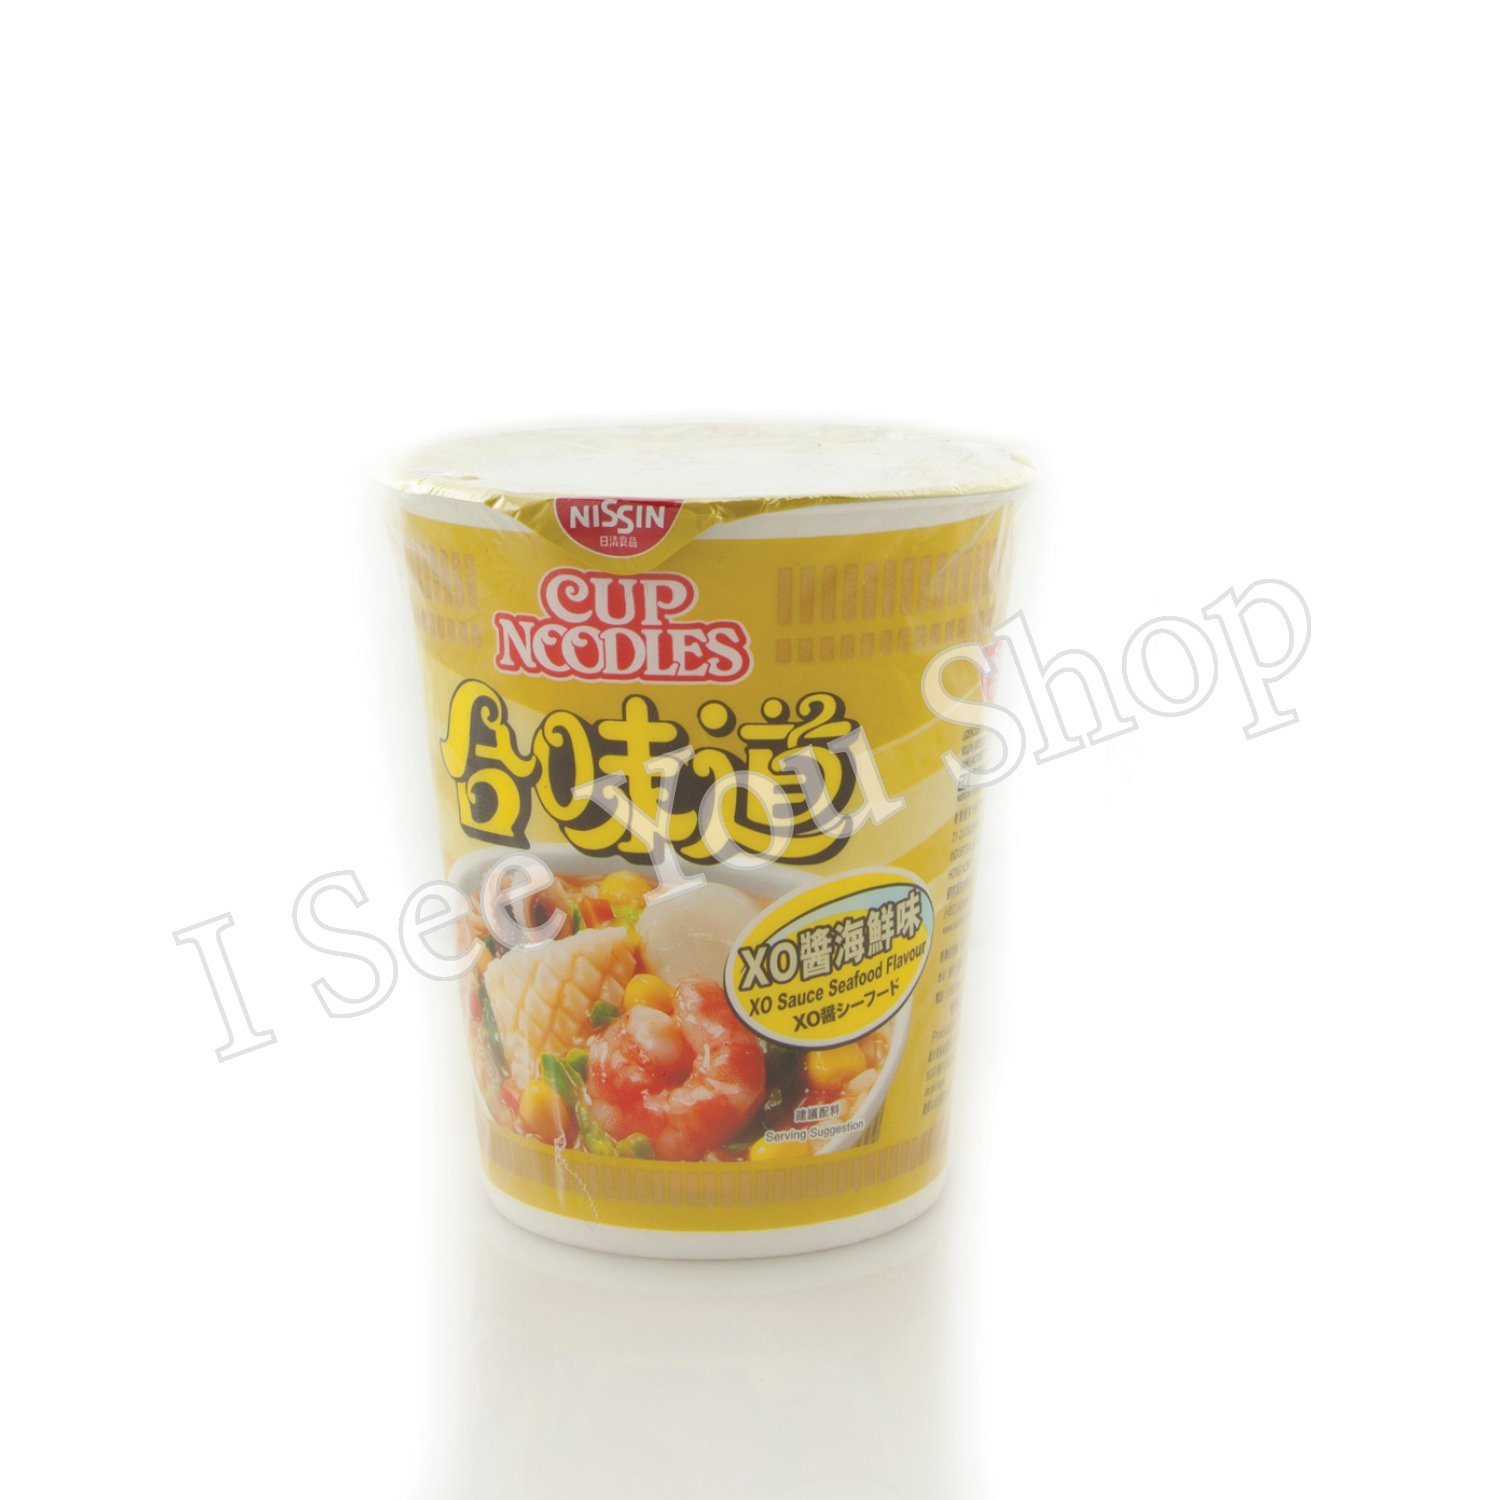 ��� XO�海鮮��麵 Nissin XO Sauce Seafood Flavor Cup Noodles 75g